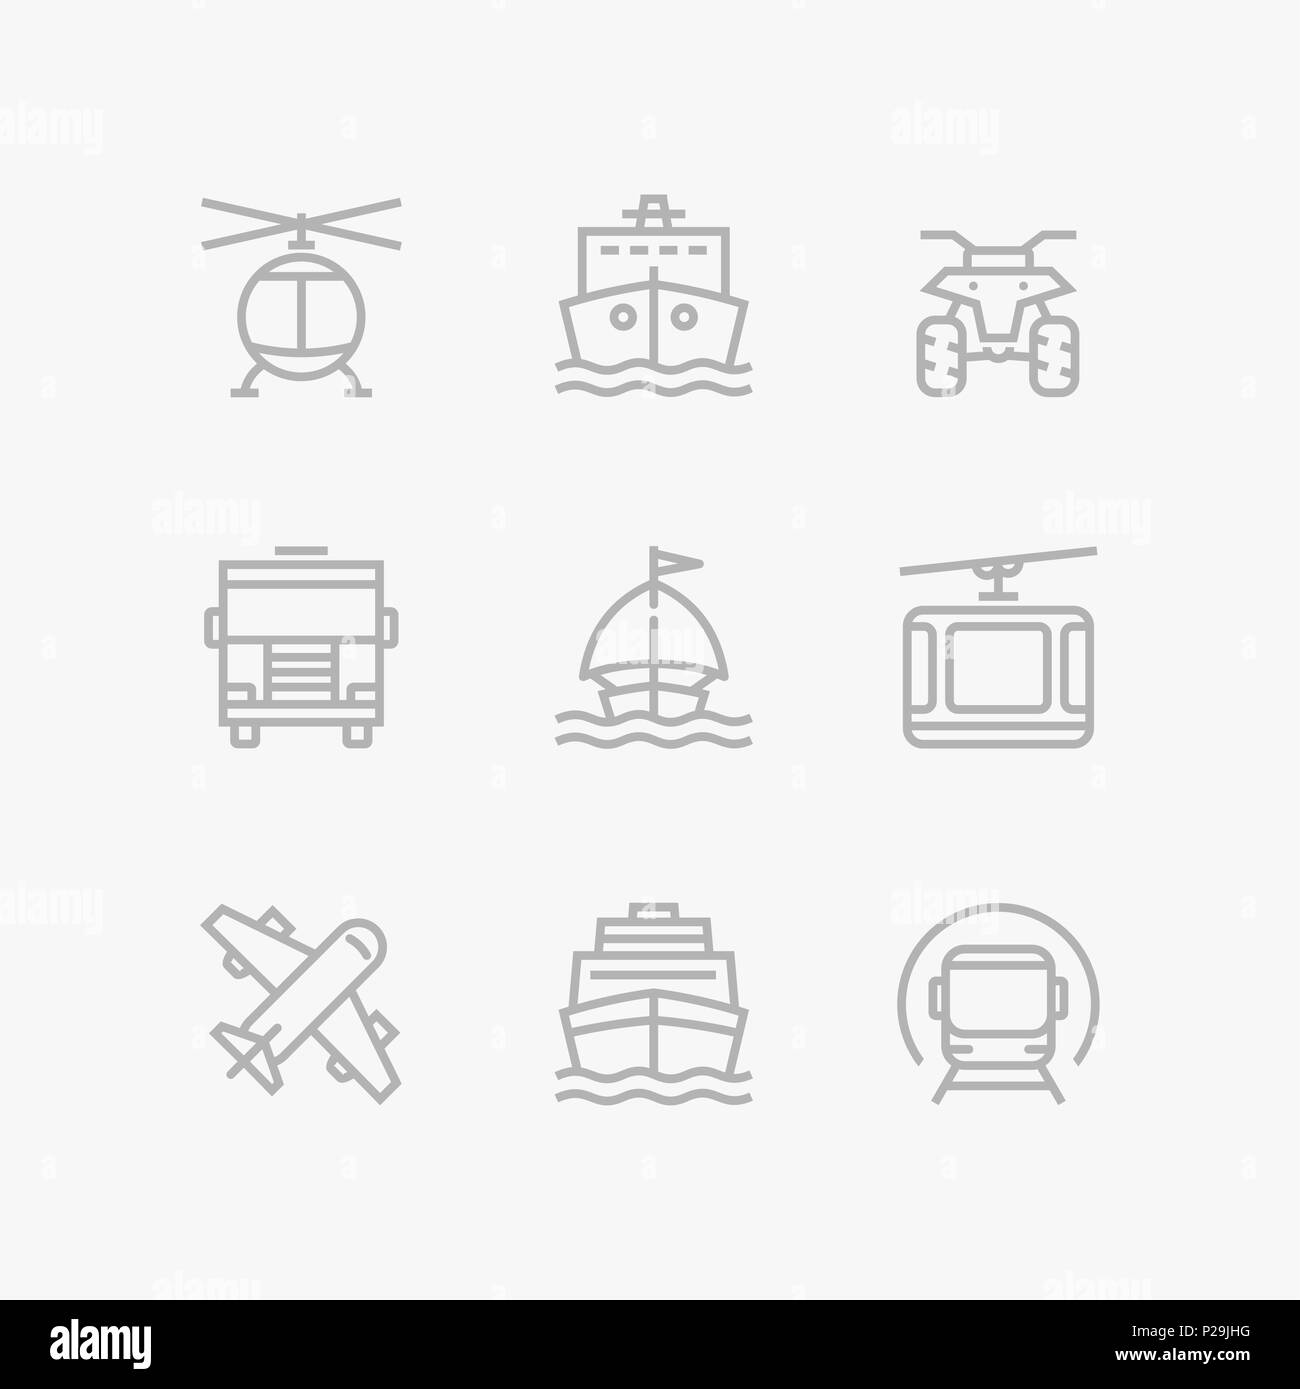 Grey Transport, vehicle, truck and car simple vector icons for web and mobile design pack 3 - Stock Image